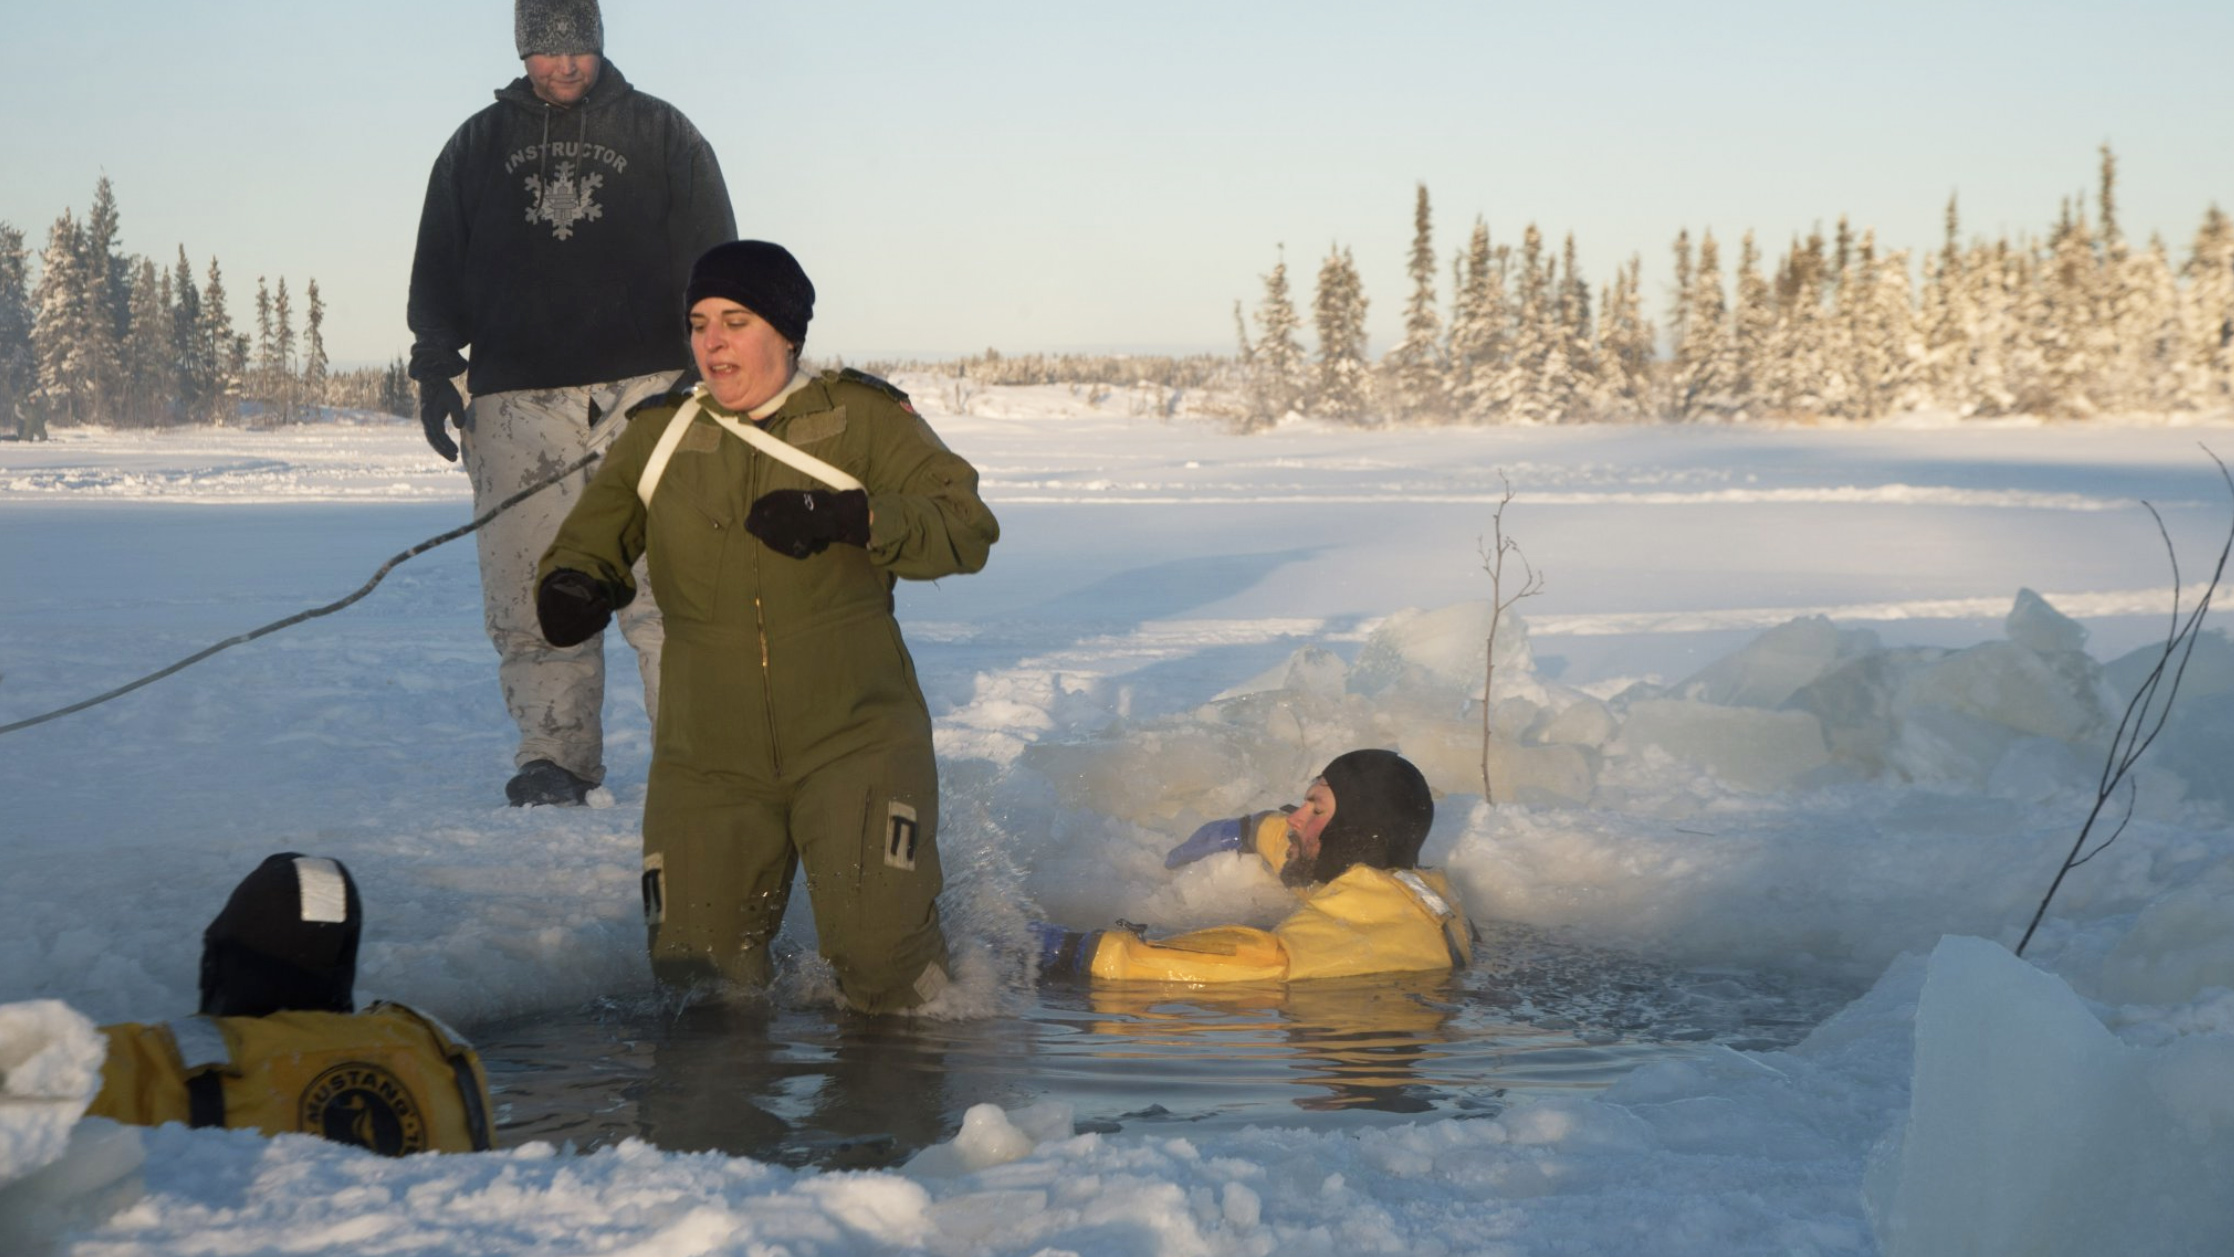 Training Exercise A-Canadian-Forces-member-takes-a-quick-dip-in-Long-Lake-as-part-of-a-cold-water-immersion-training-.jpg?zoom=1